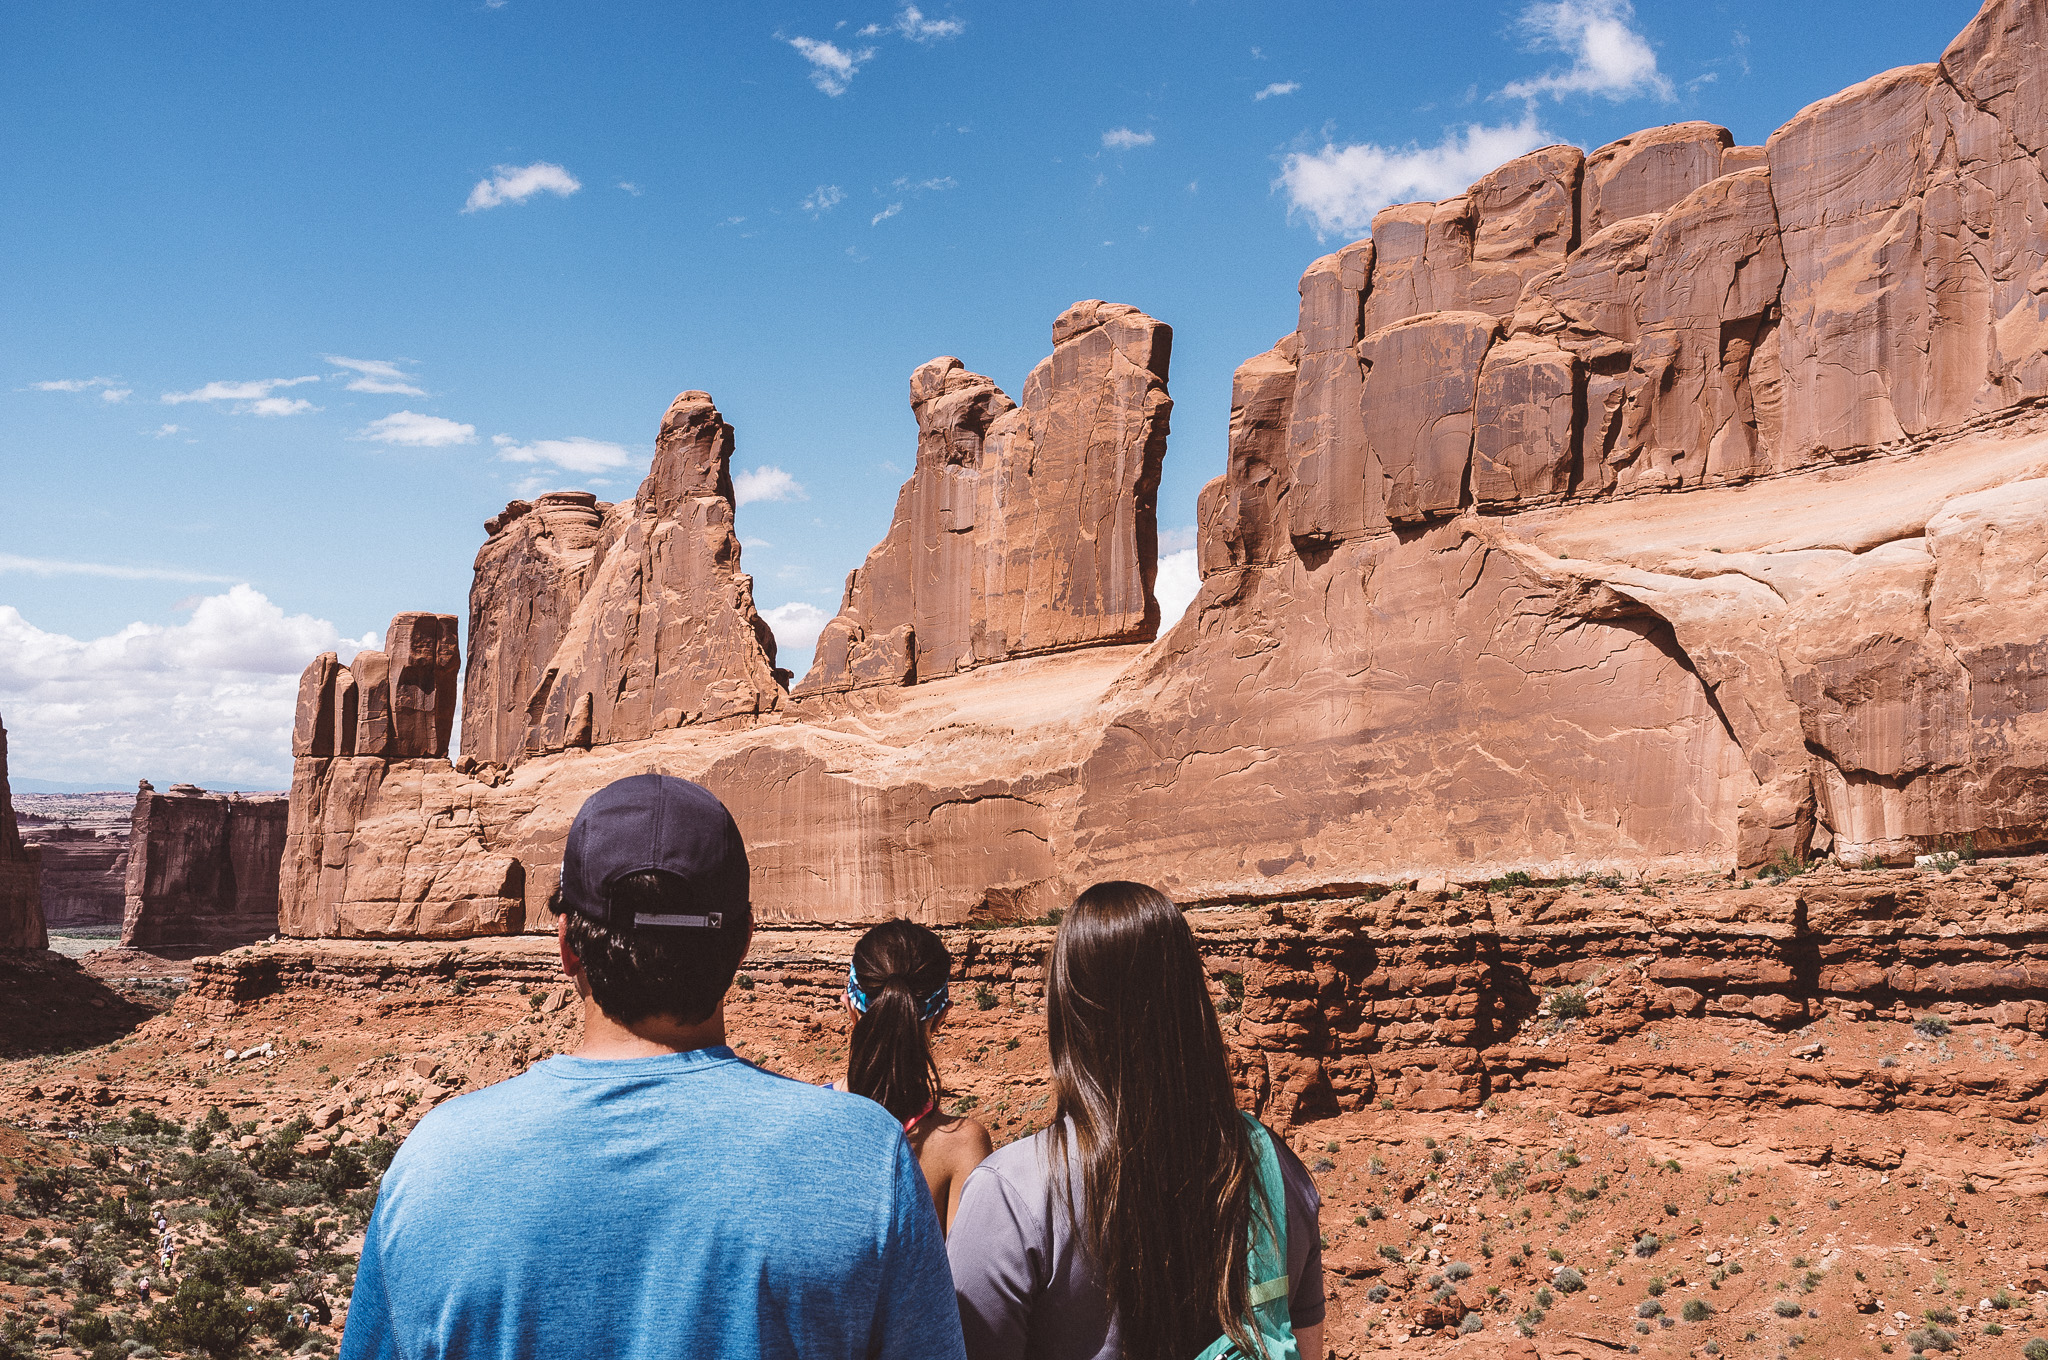 thomas wywrot photography photographer travel camping road trip camera vsco portra fuji fujifilm x100 arches national park utah